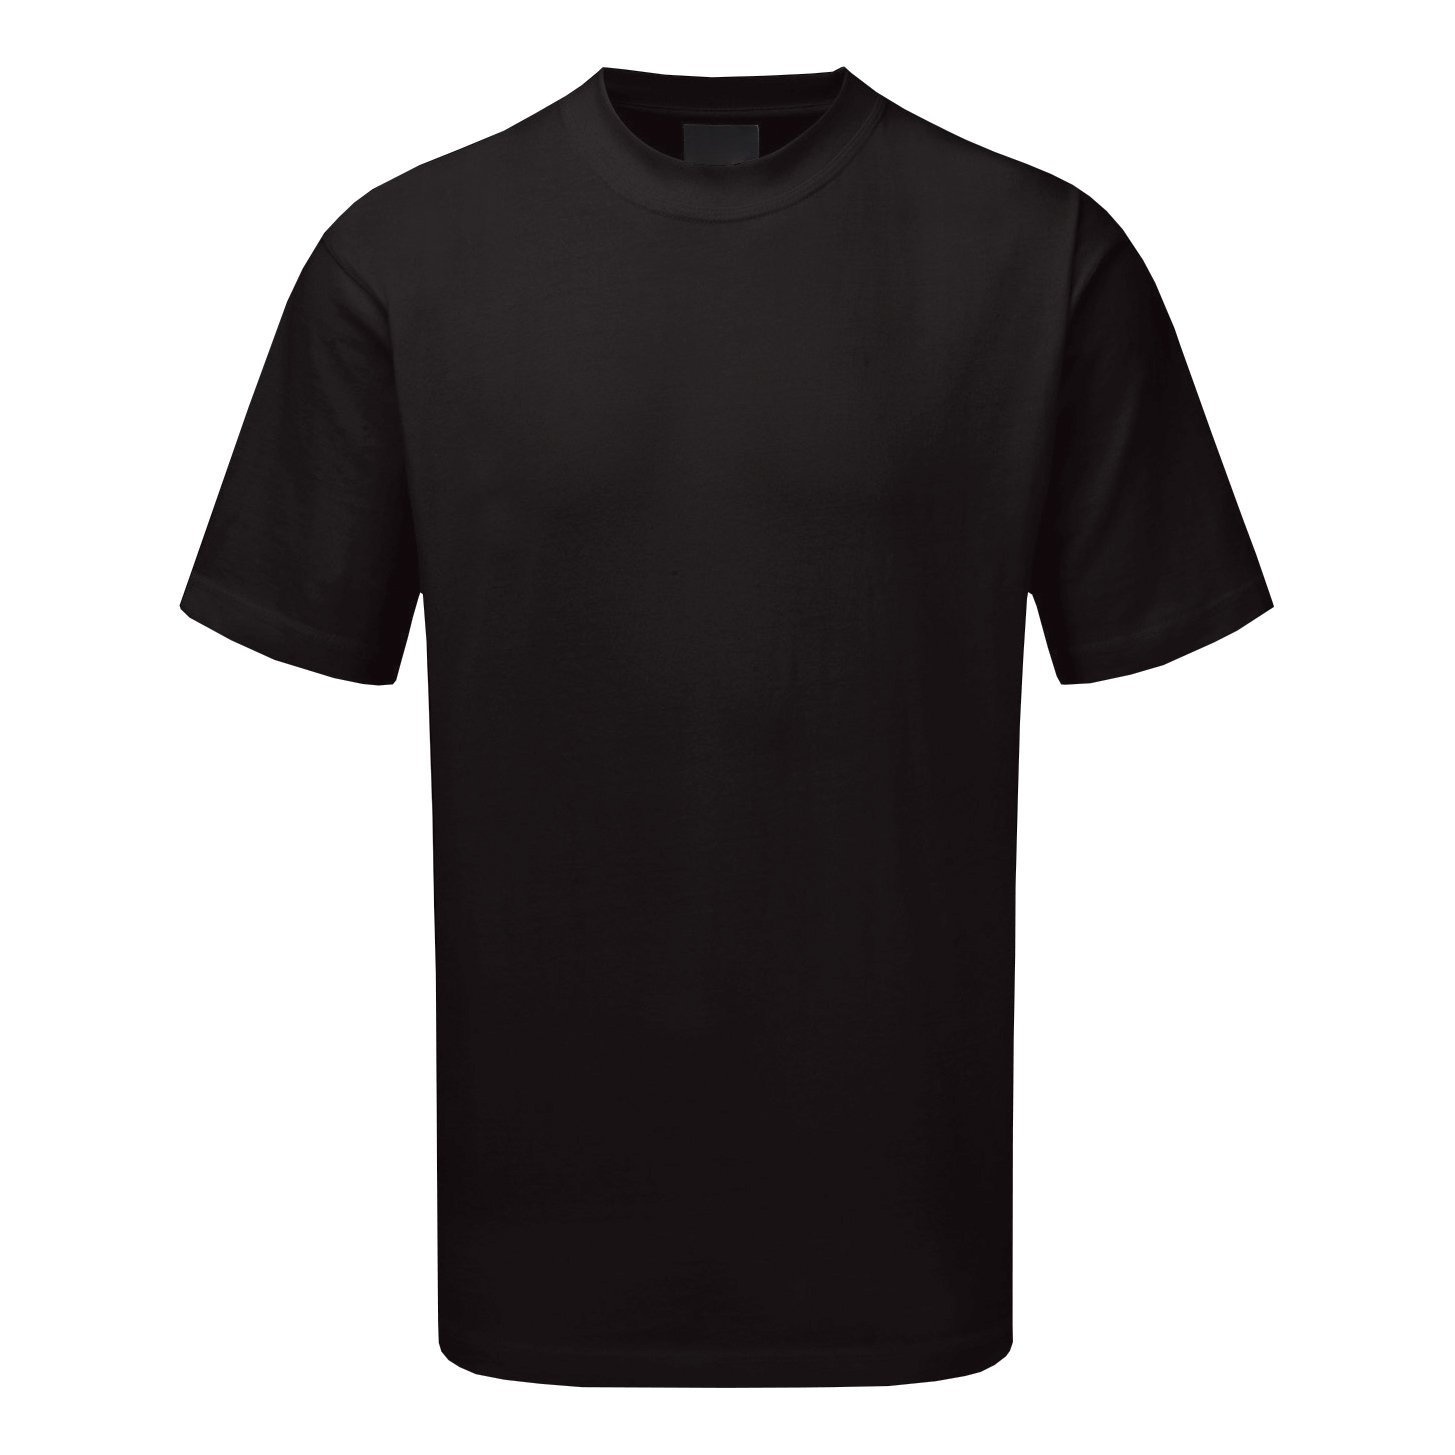 Premium T-Shirt Polycotton Triple Stitched Medium Black Ref CLCTSHWBLM *Up to 3 Day Leadtime*